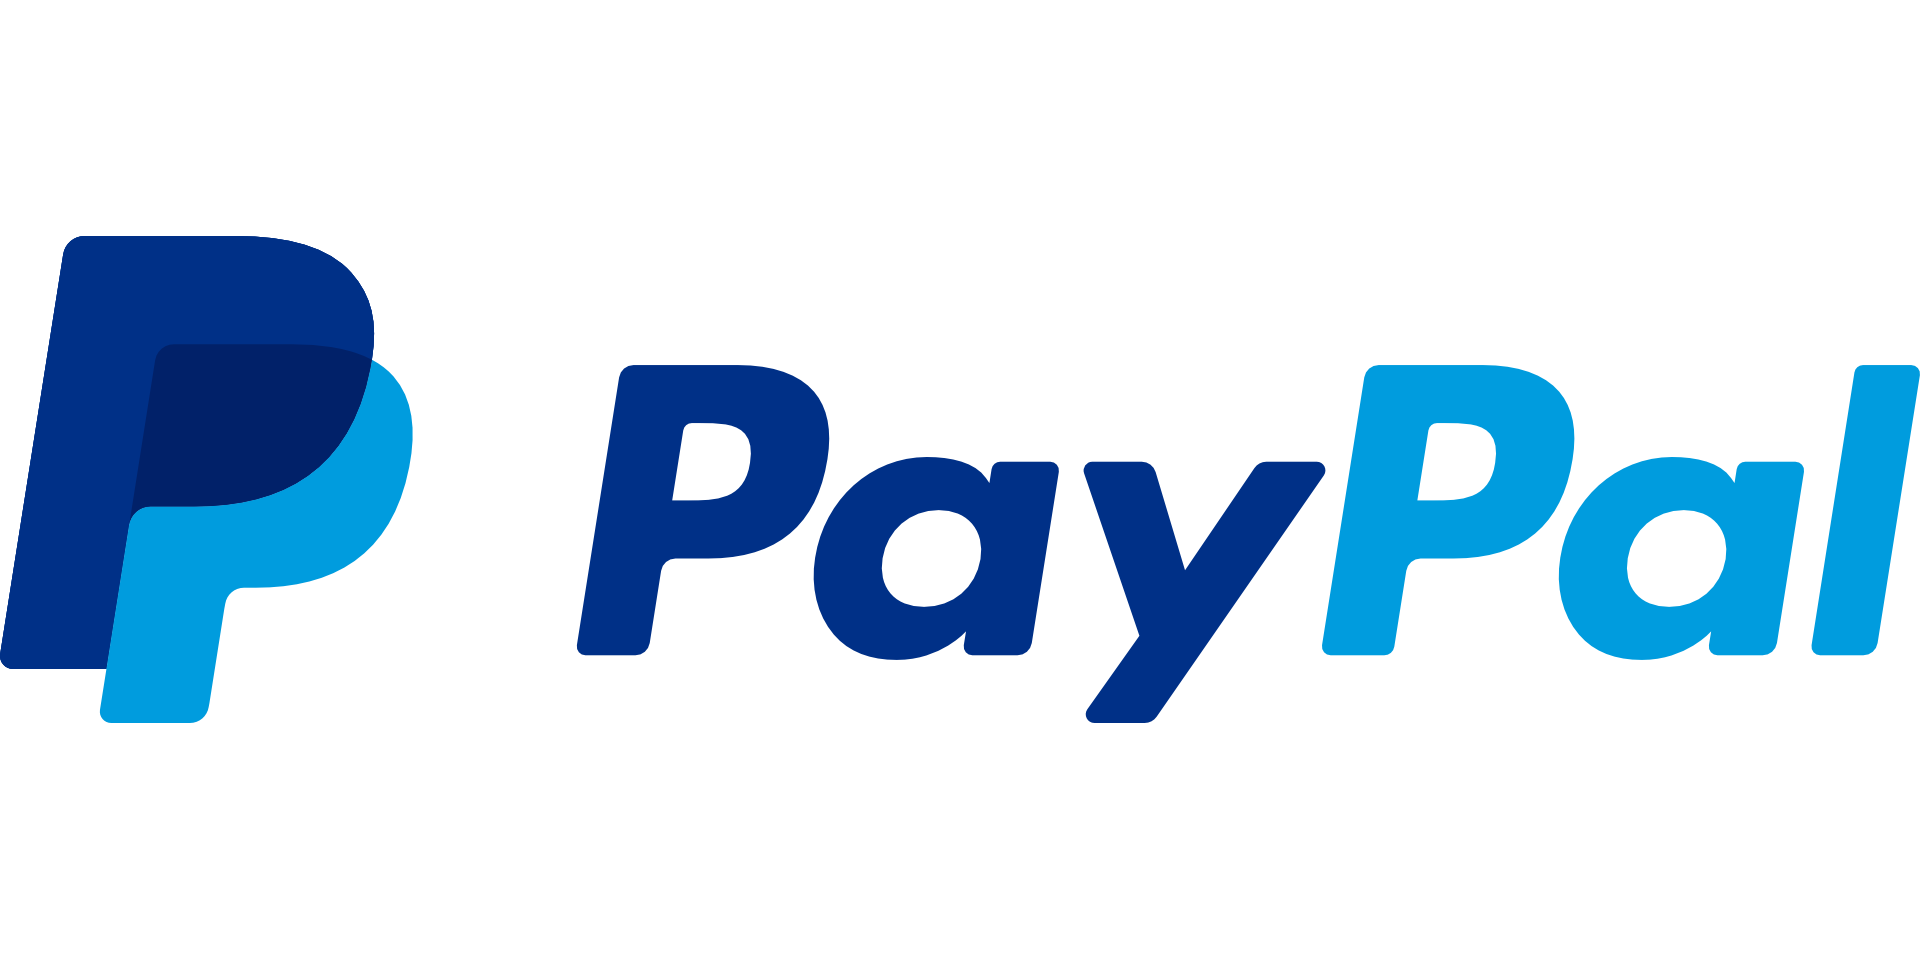 Paypal credit card png. How to easily create